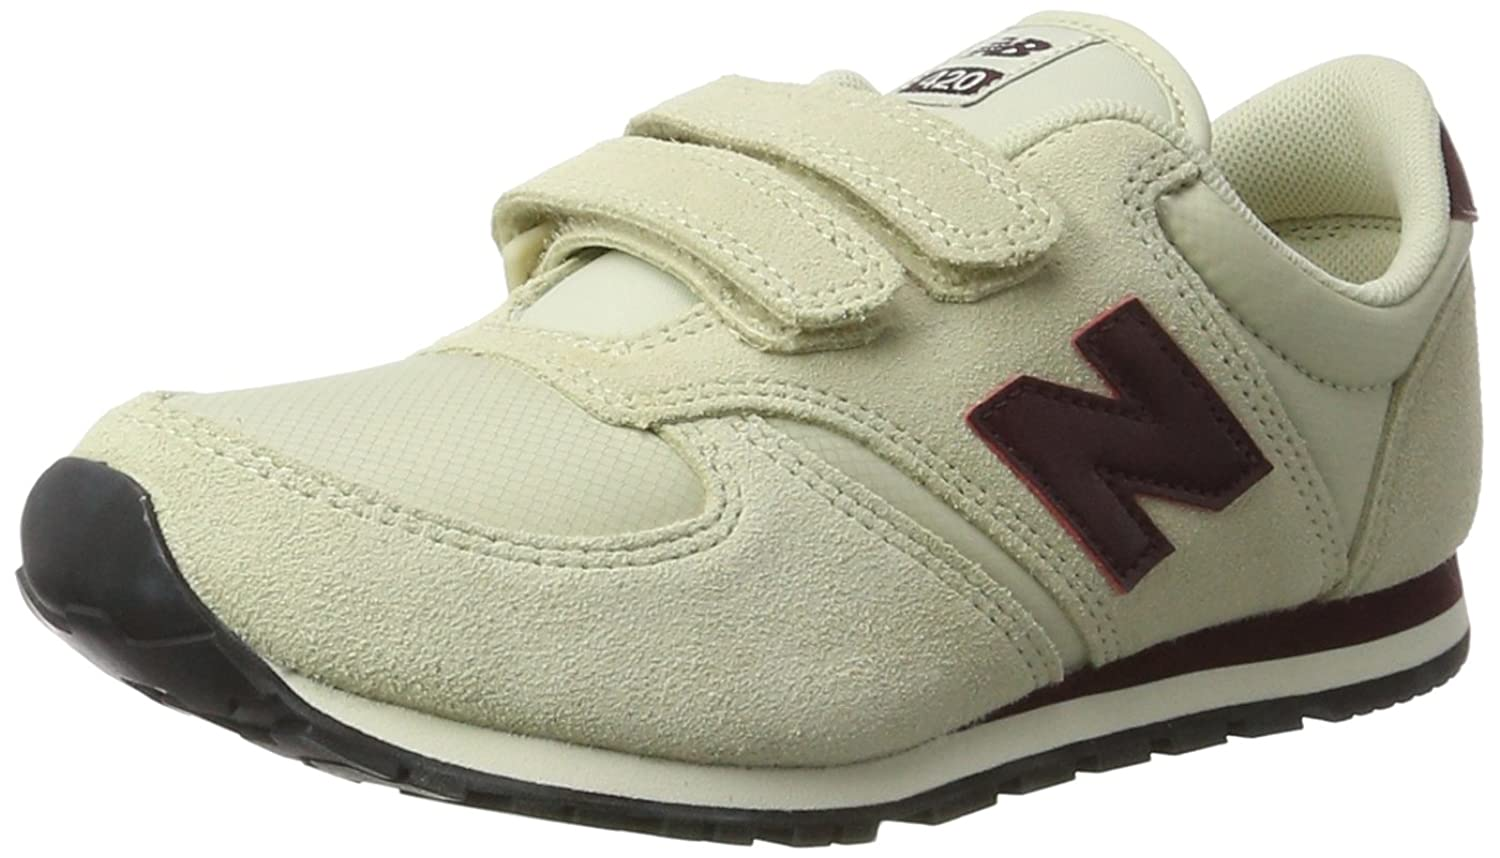 New Balance 420v1, Baskets Mixte Enfant, Bleu (Navy/Burgundy), 35 EU